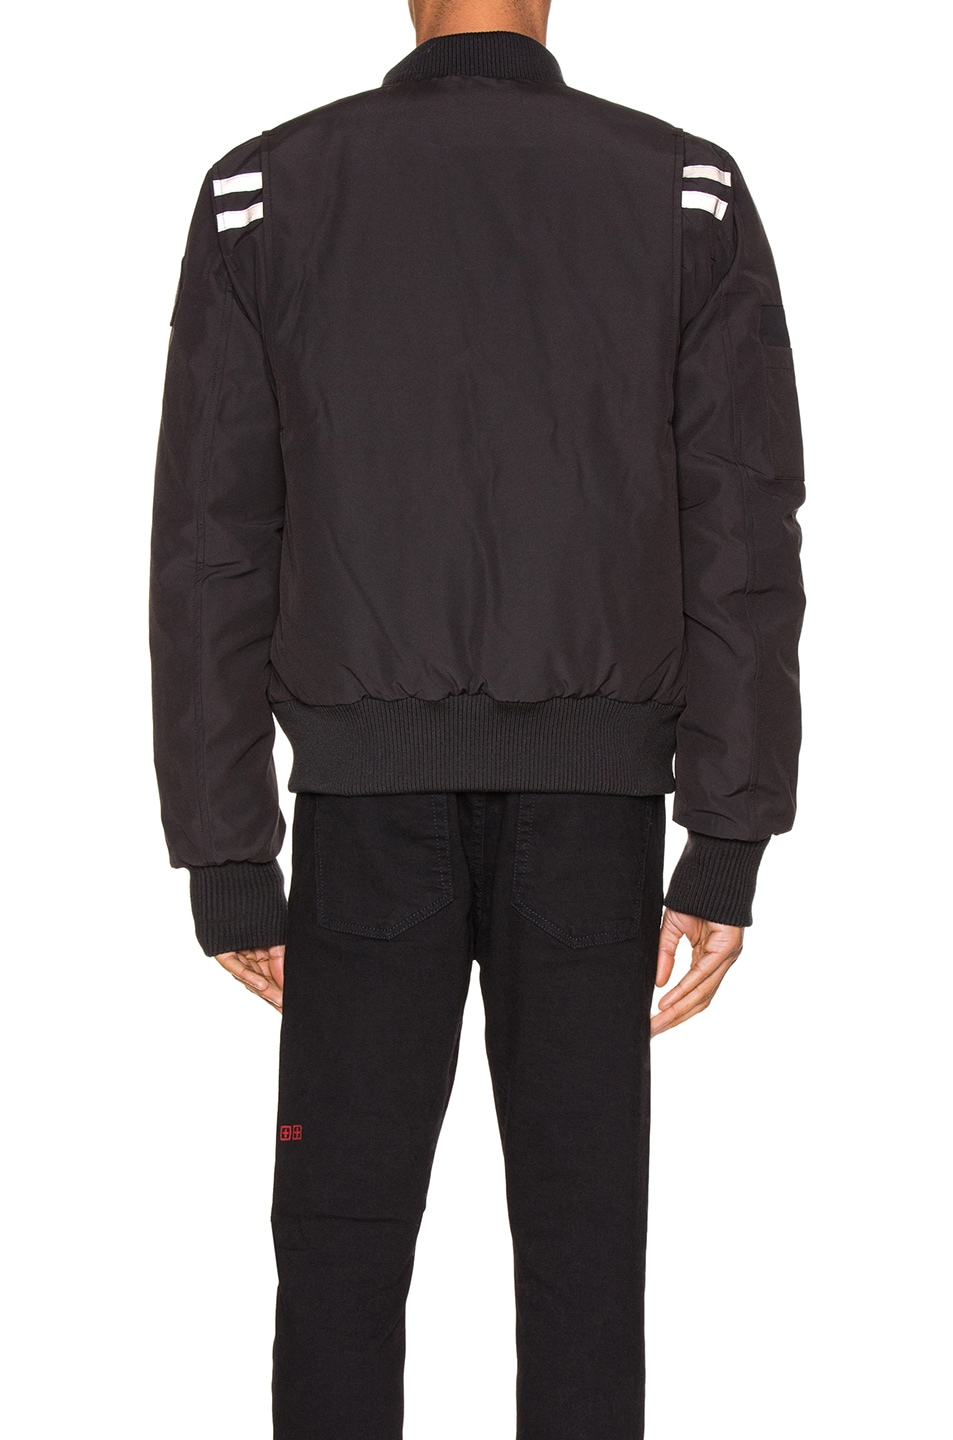 Image 5 of Canada Goose Black Label Kirkfield Bomber in Black